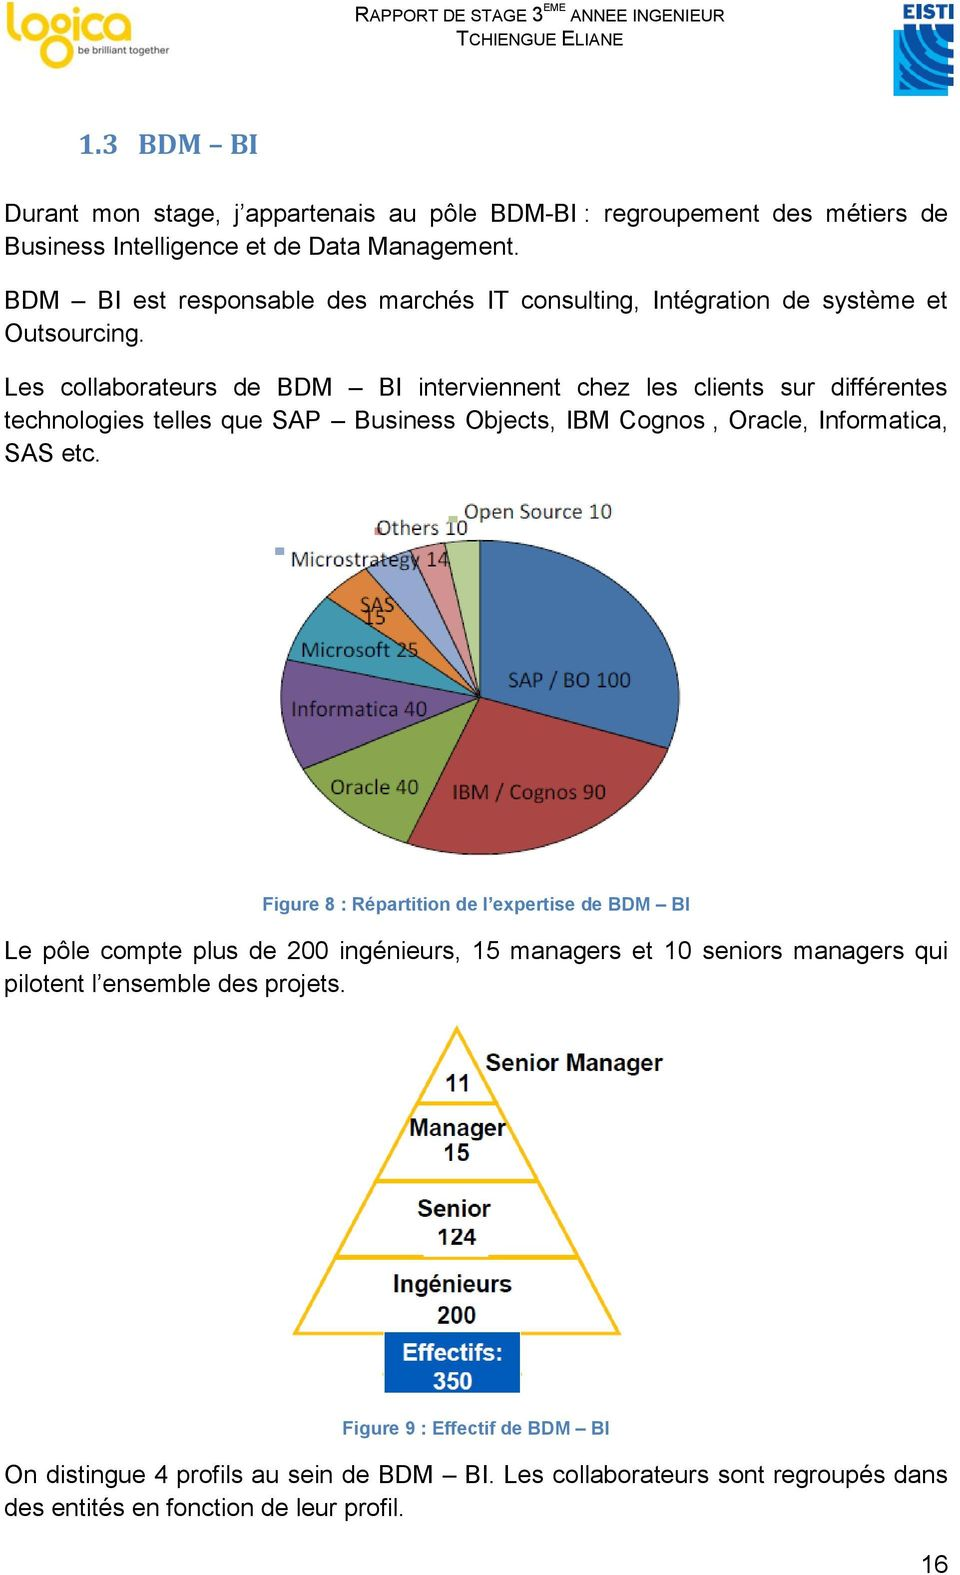 Les collaborateurs de BDM BI interviennent chez les clients sur différentes technologies telles que SAP Business Objects, IBM Cognos, Oracle, Informatica, SAS etc.